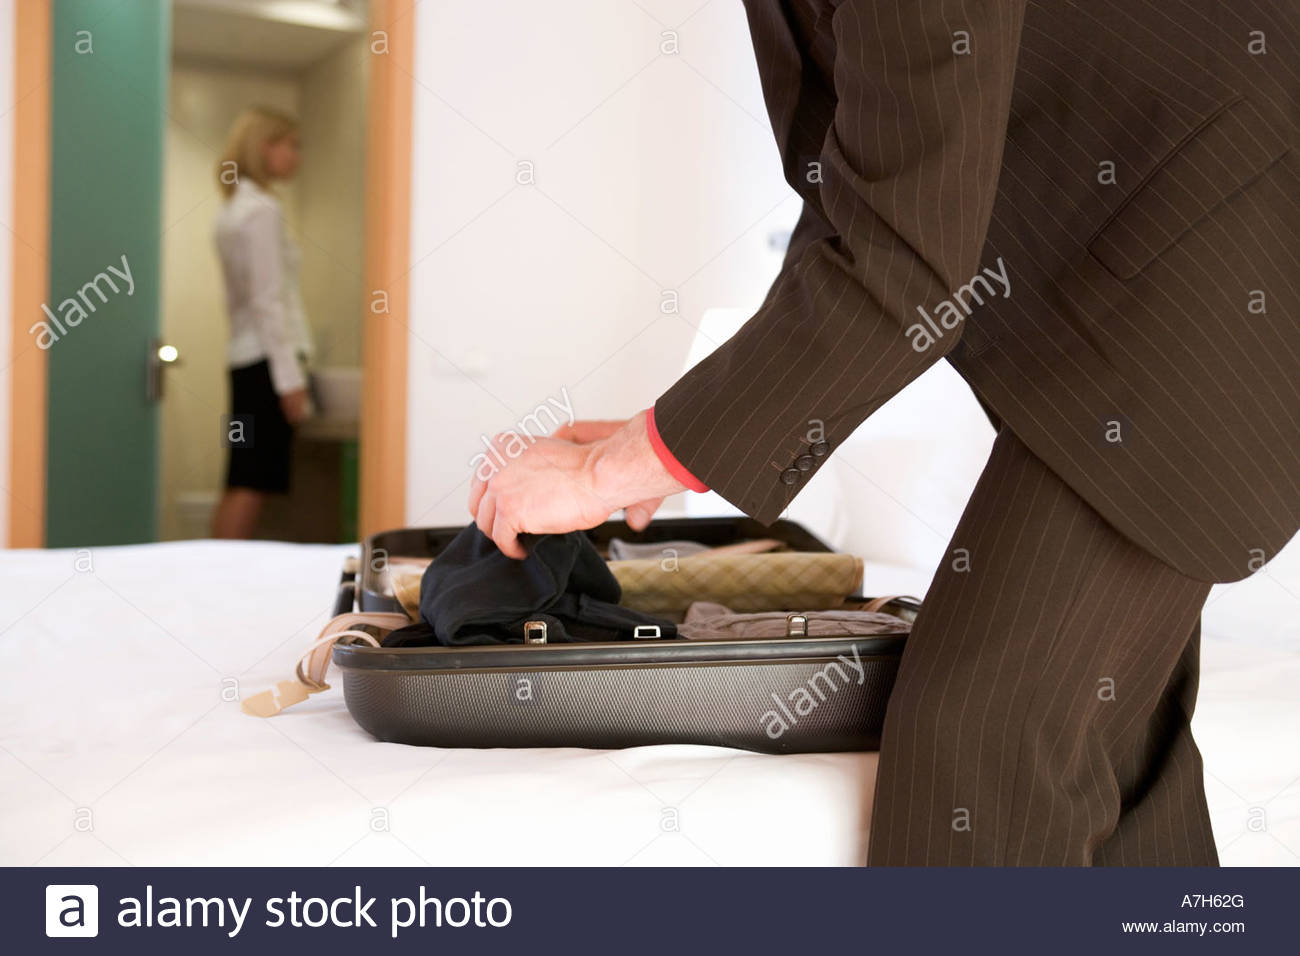 A businessman packing a suitcase - Stock Image